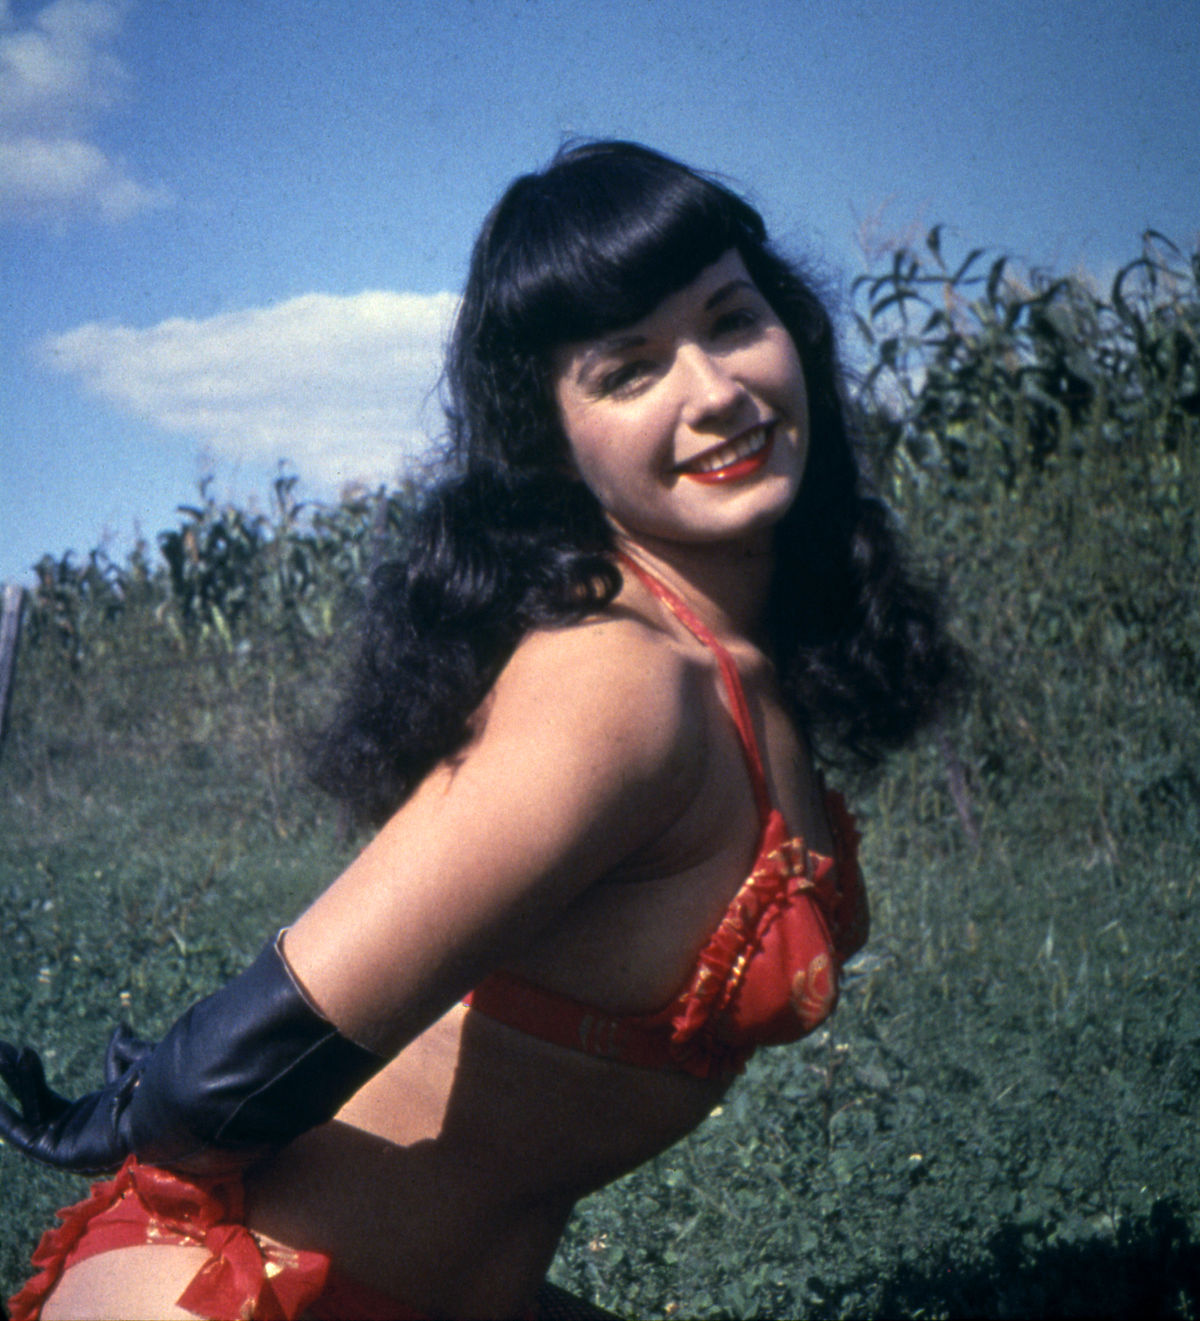 http://upload.wikimedia.org/wikipedia/commons/thumb/6/6e/Bettie_Page.jpg/1200px-Bettie_Page.jpg